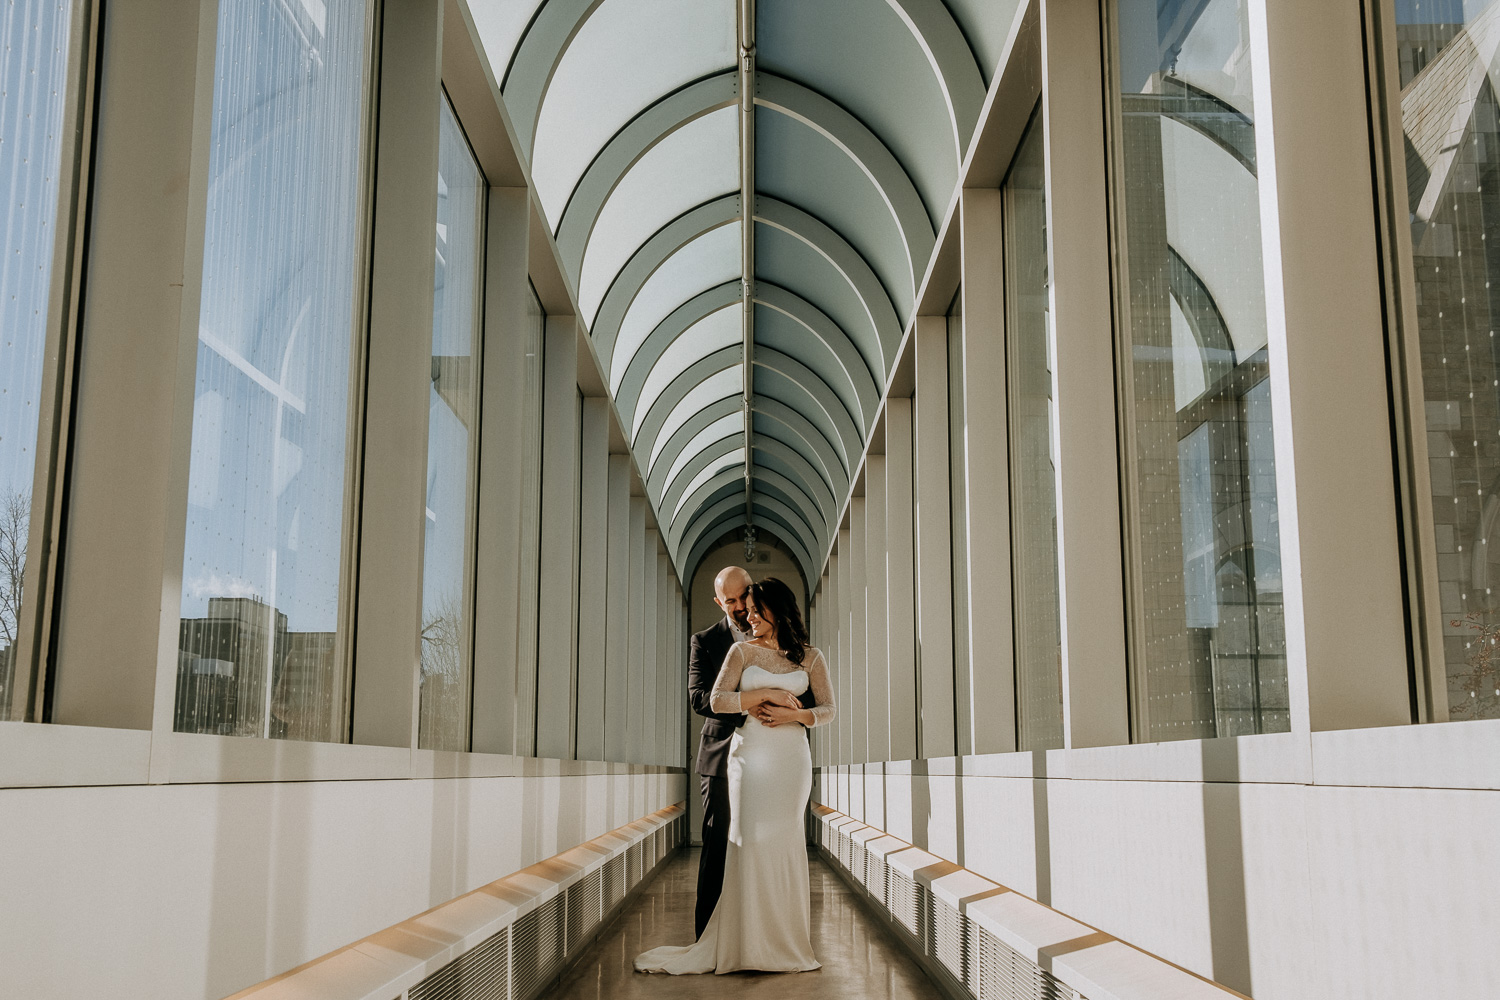 Photograph of a bride and groom at city hall in Ottawa